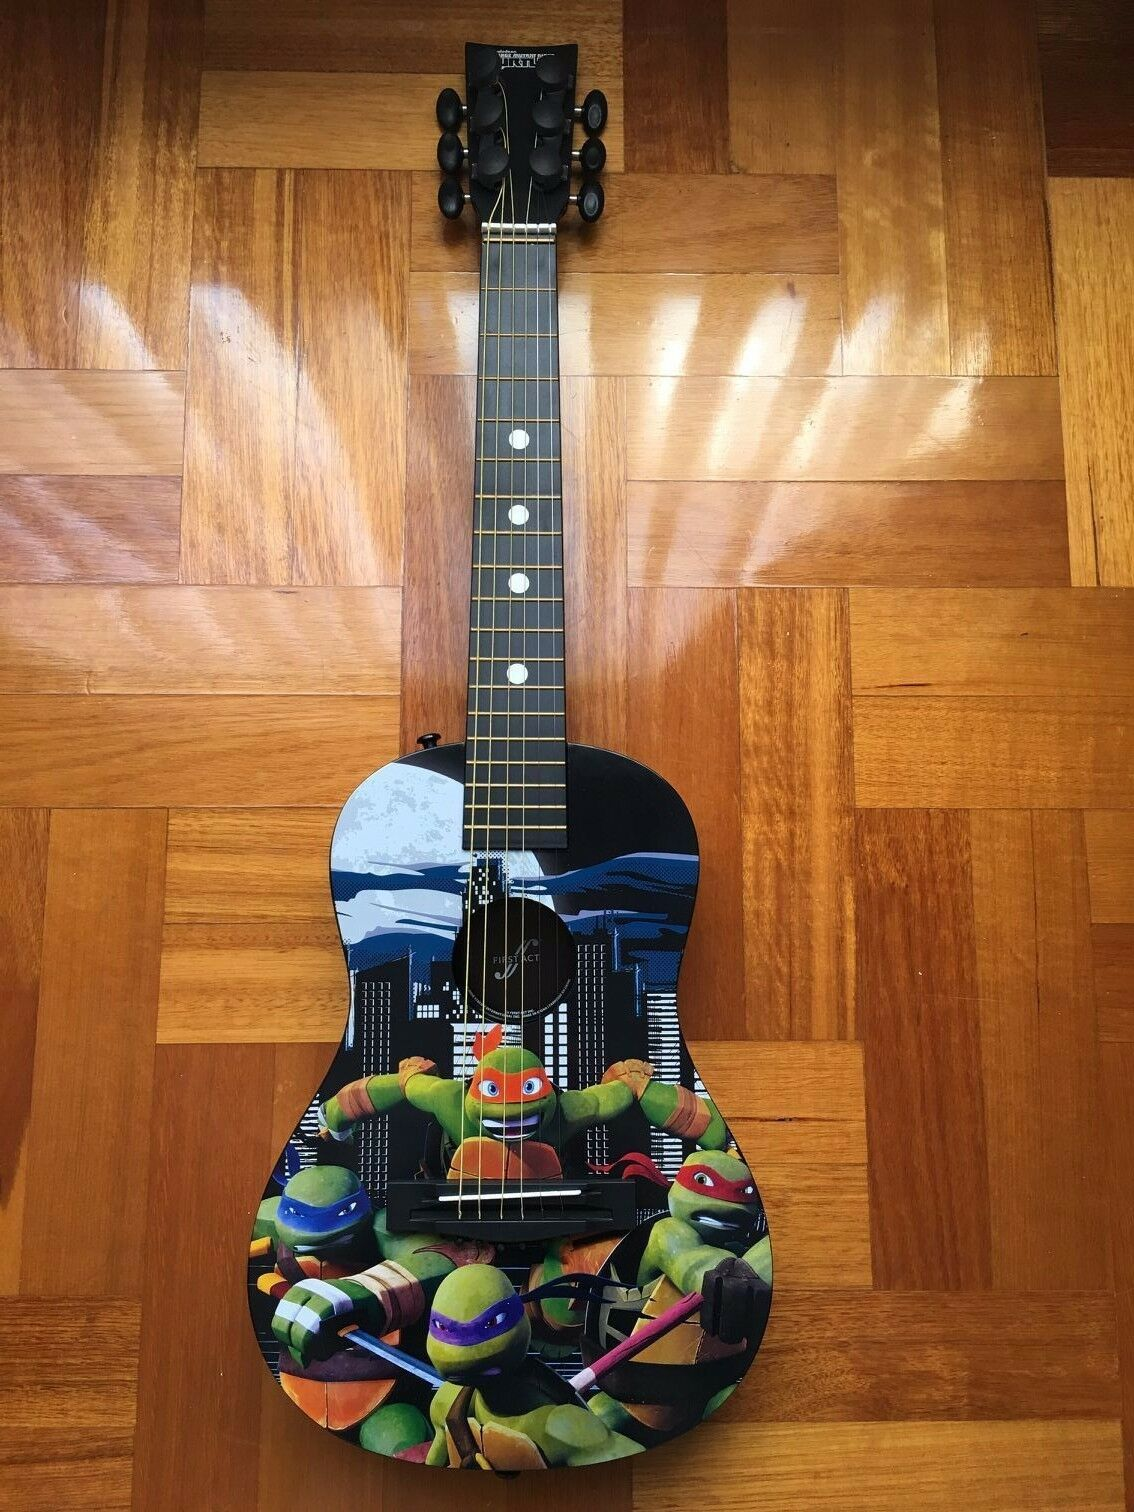 Teenager Mutant Ninja Turtle TMNT Acoustic First Guitar Musical Instruments Kids